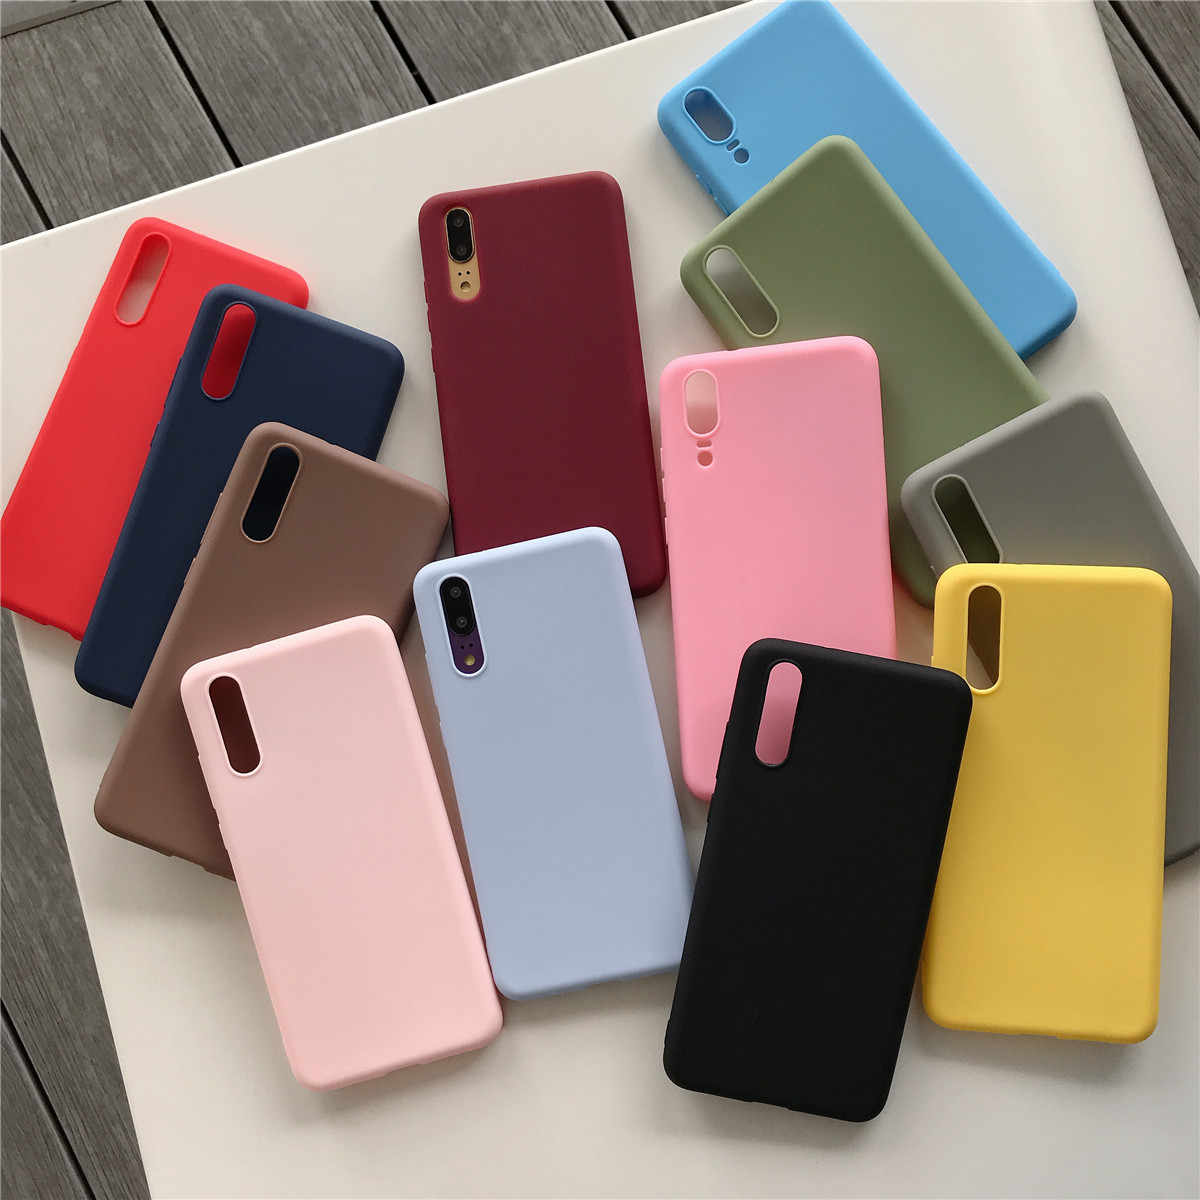 Candy Color Case For Samsung Galaxy A50 A20 A30 A50 J7 PRO J2 Prime Silicone Soft Shockproof Cover